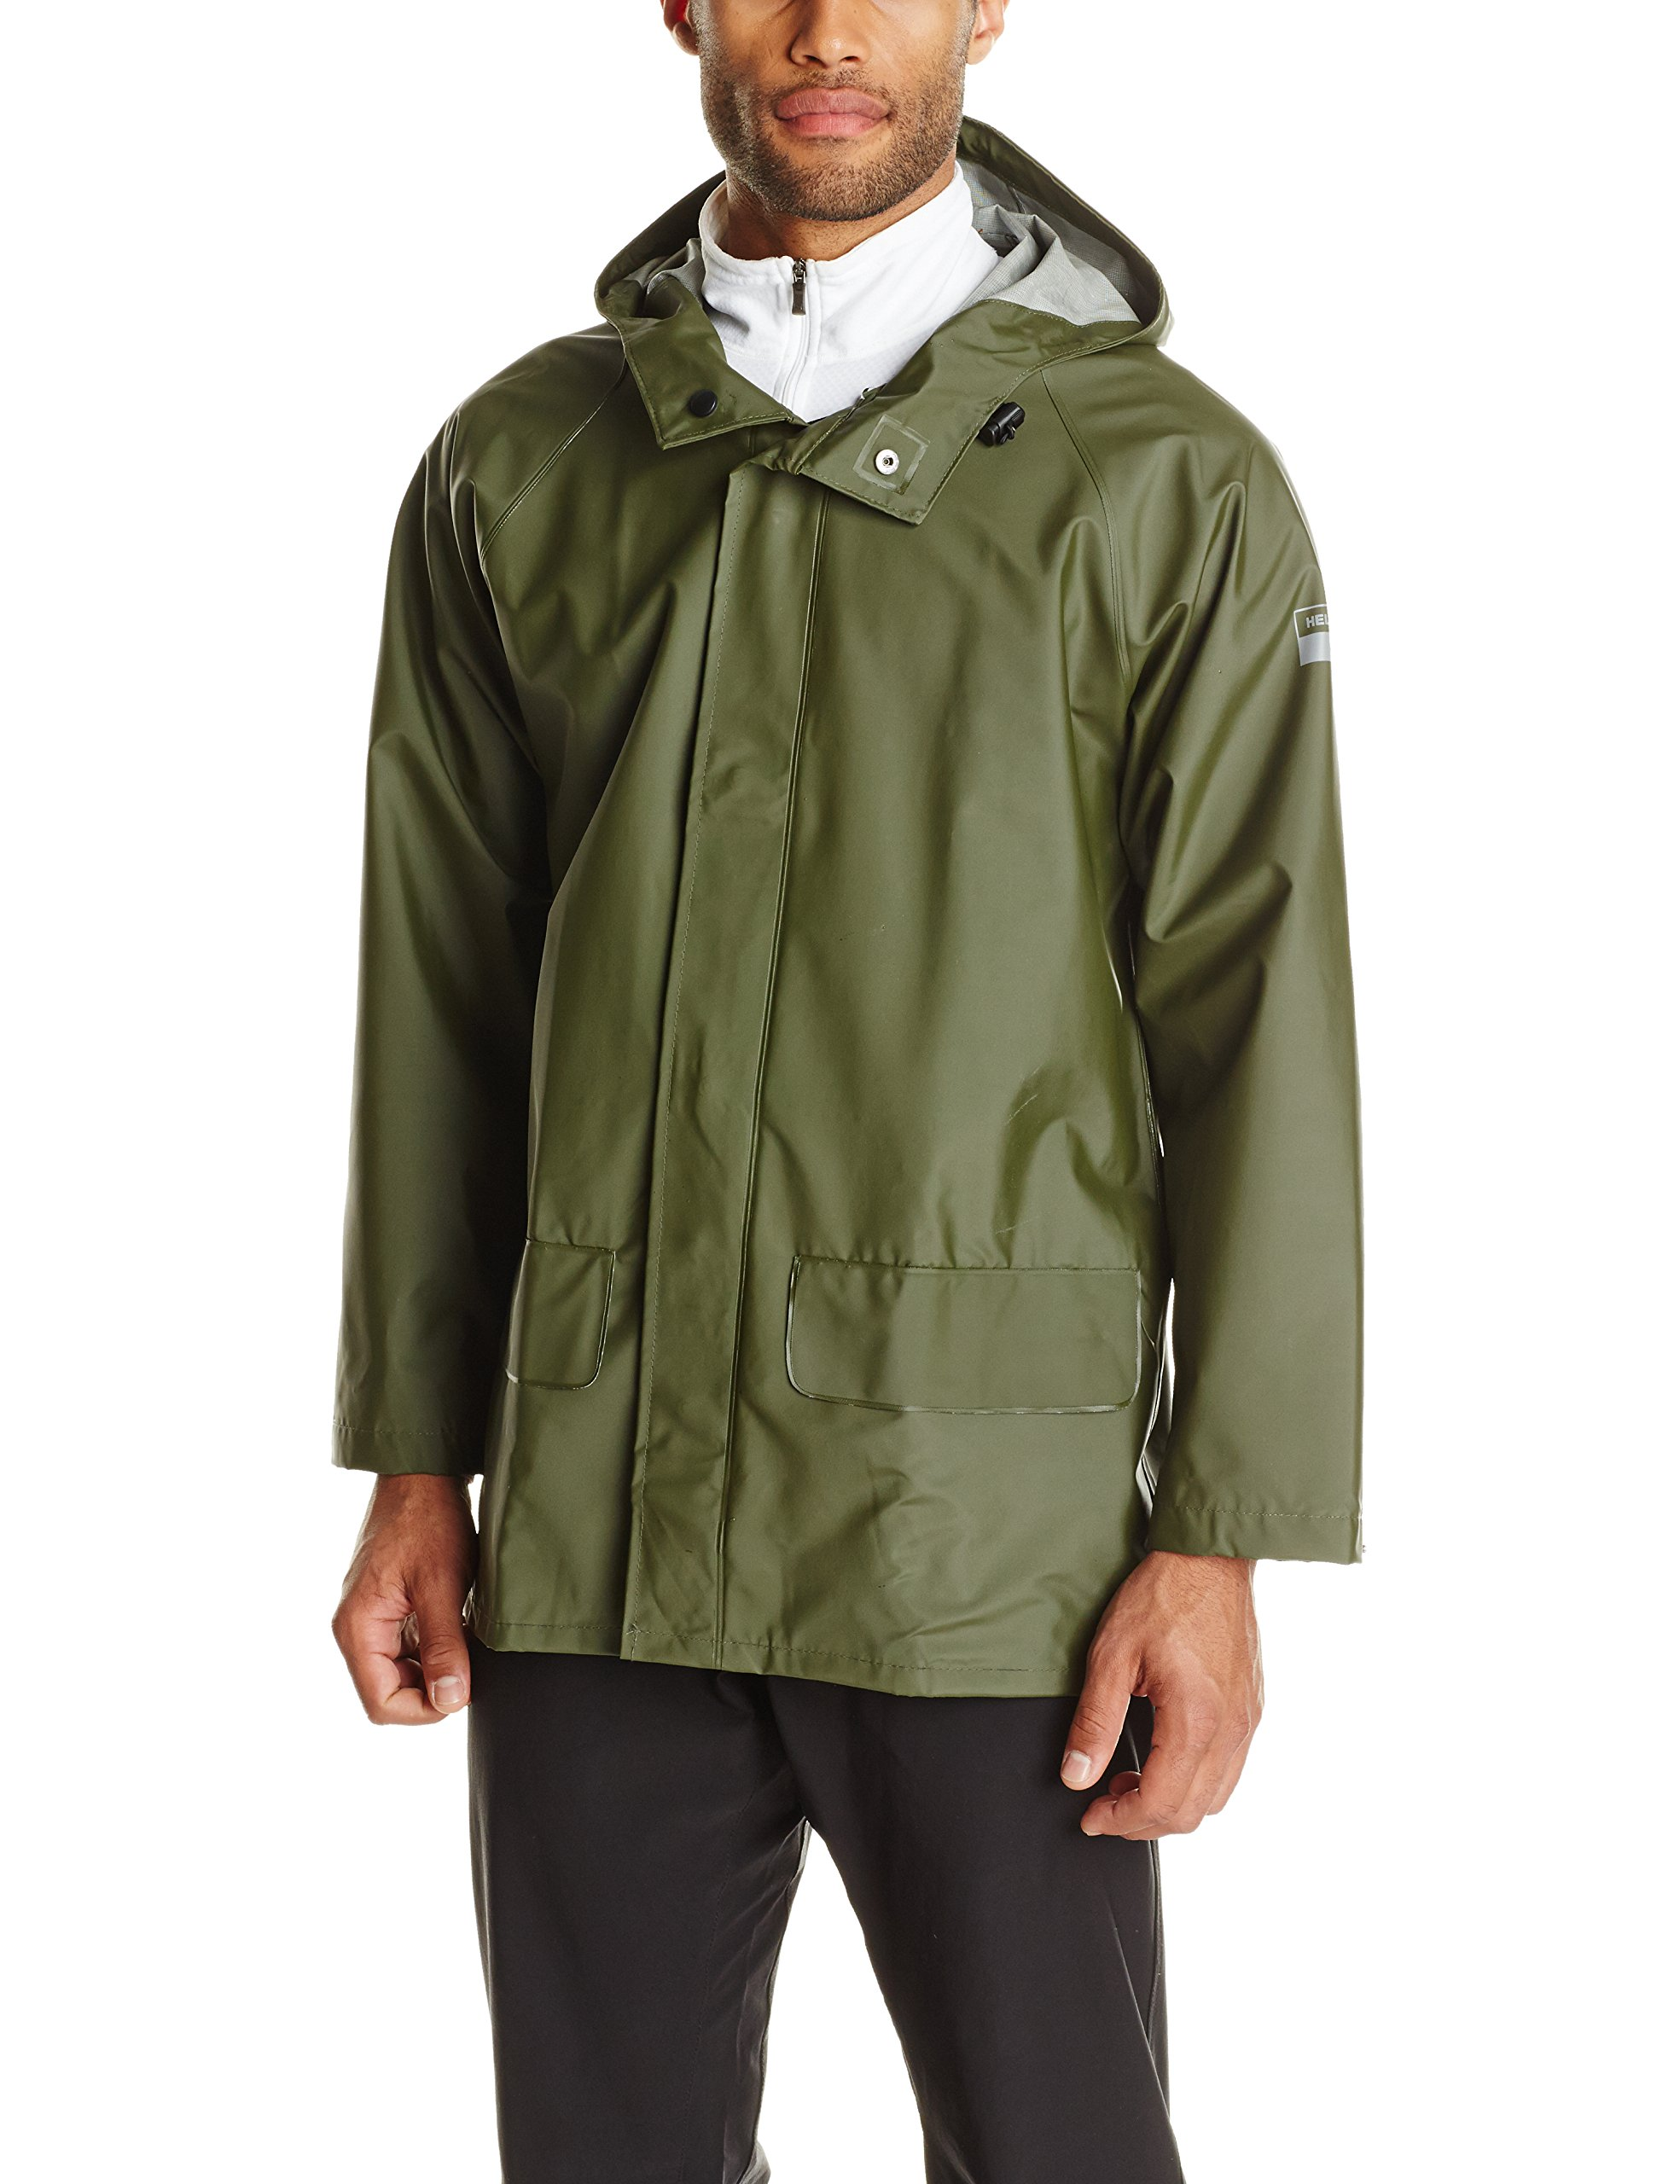 Helly Hansen Workwear Men's Mandal Rain Jacket, Army Green, 6X-Large by Helly Hansen